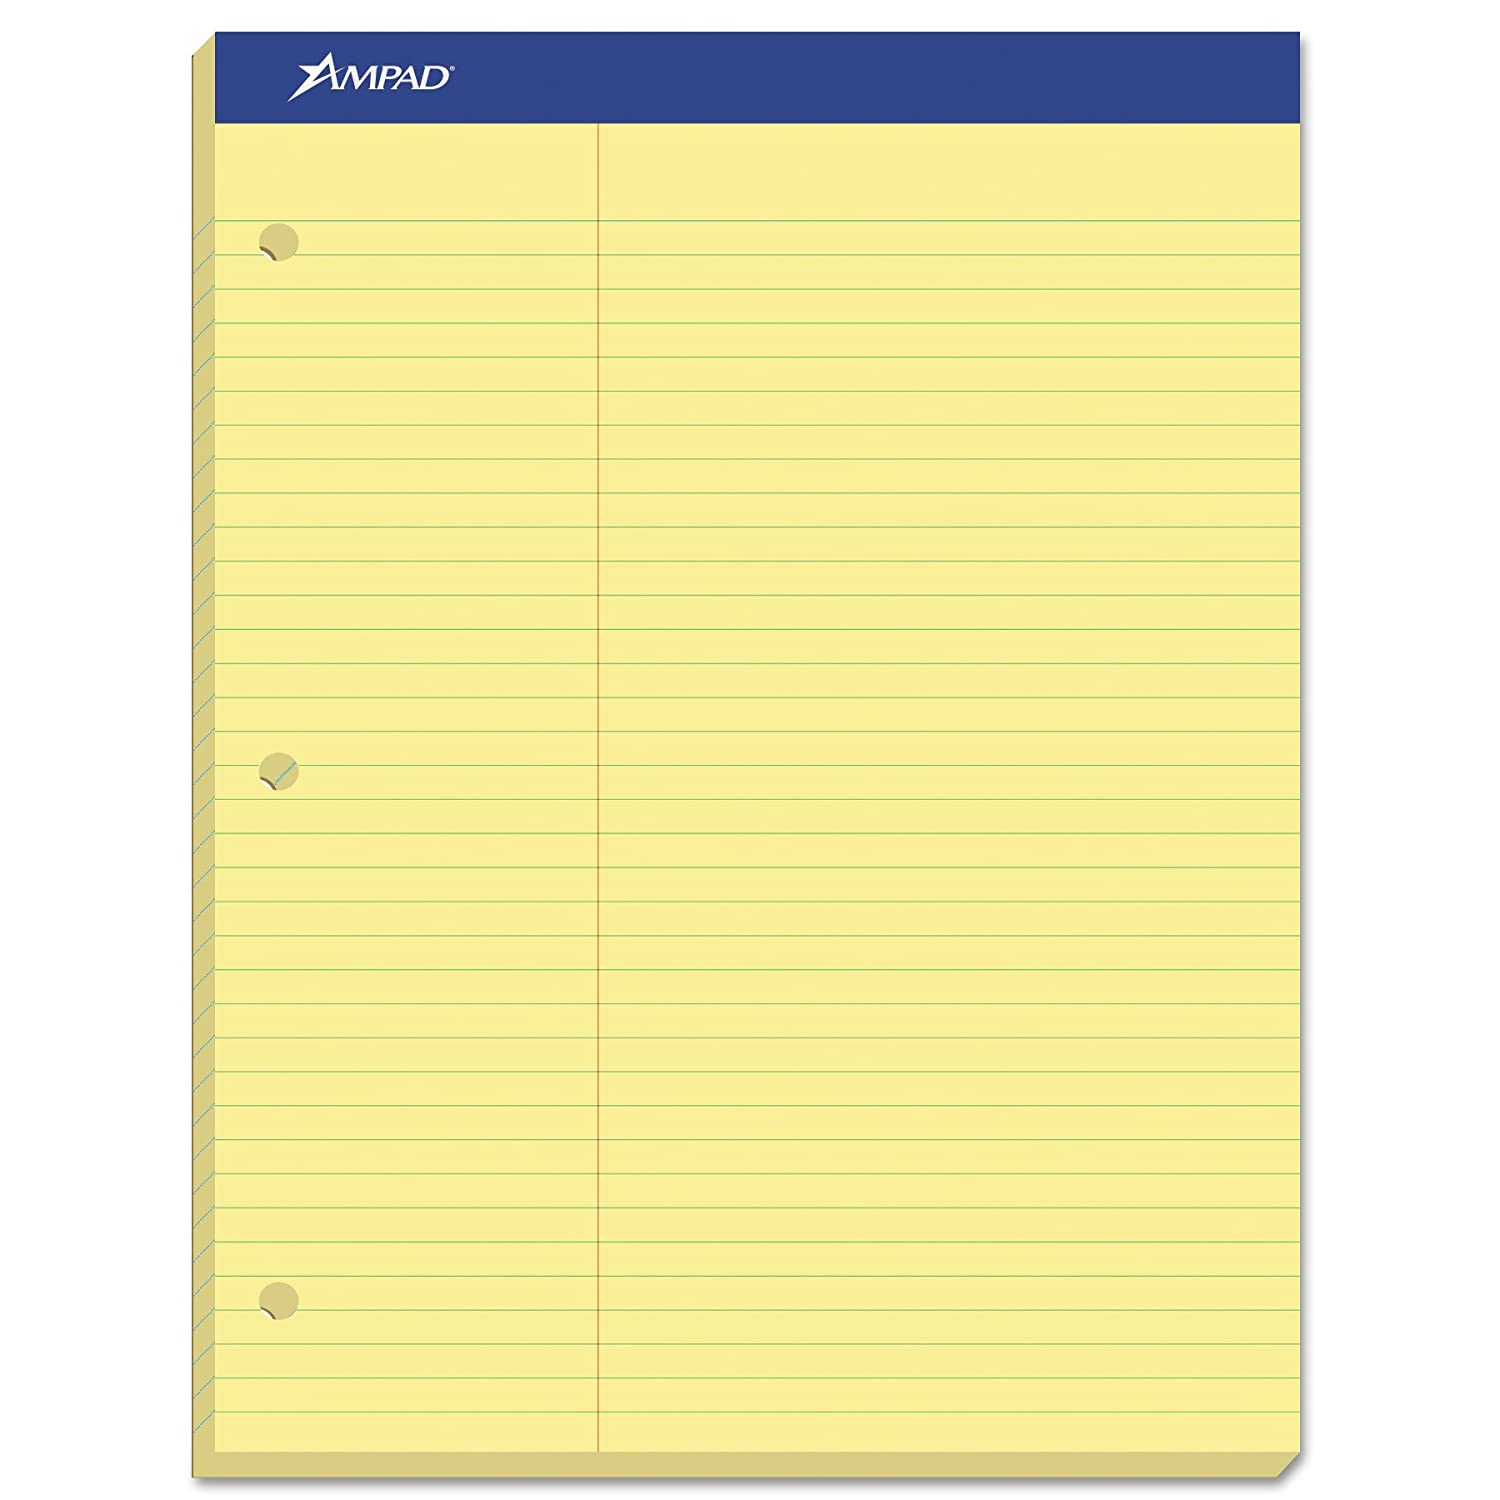 Ampad Evidence Dual Ruled Pad, Law Ruling, Size 8.5 x 11.75 Inches, Canary Paper, 100 Sheets Per Pad (20-245) #N/A!